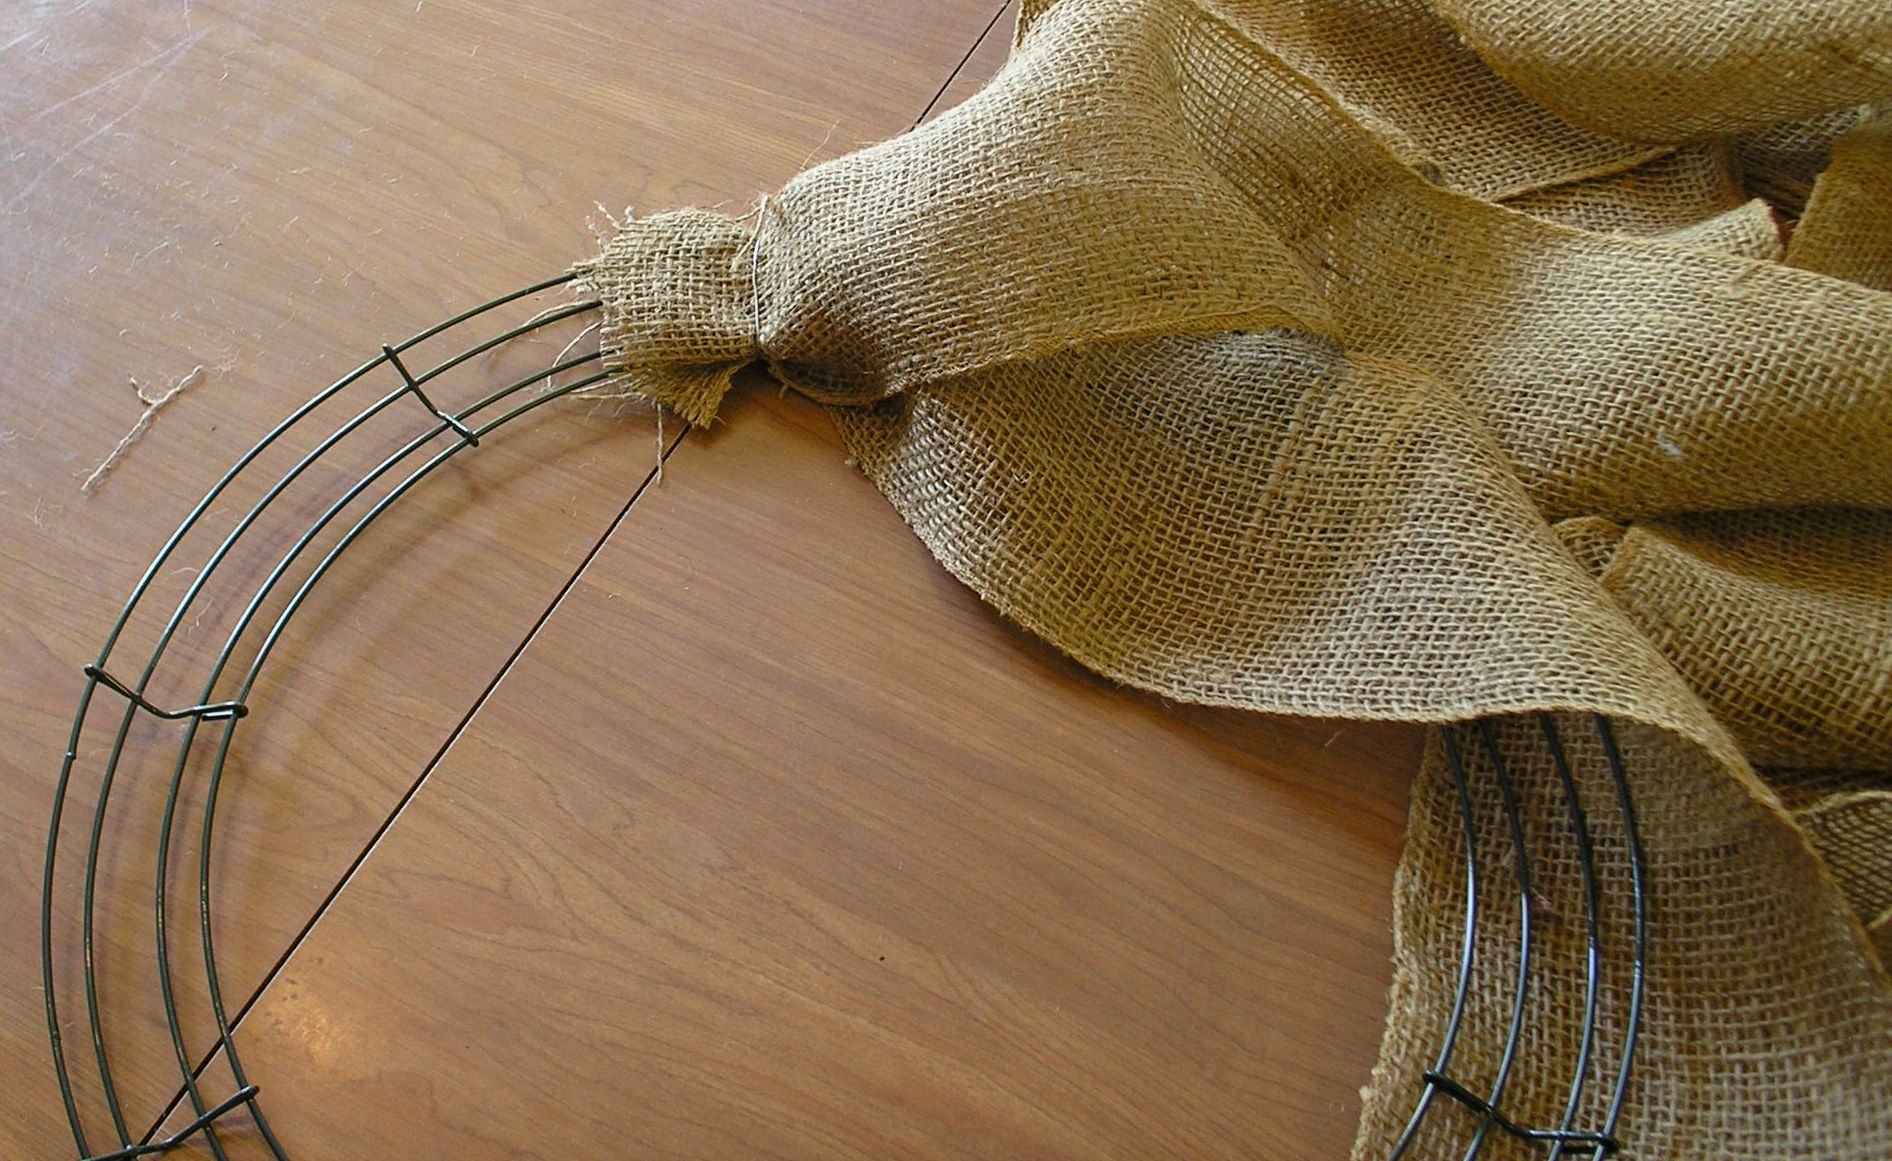 Measure out three strips of burlap each strip should be equivalent to